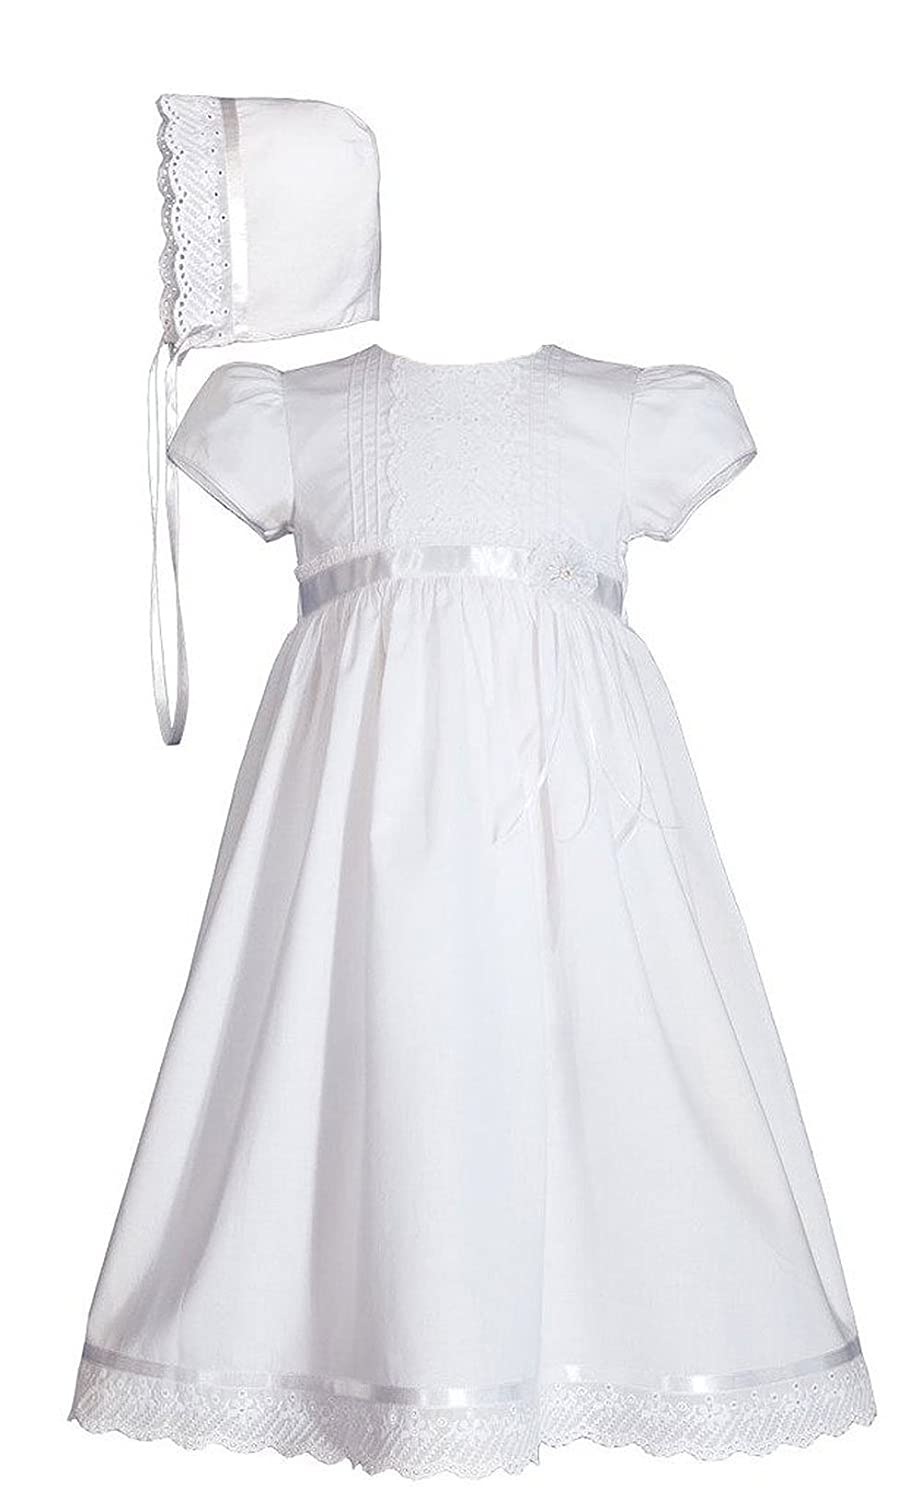 Girls Special Occasion 24 Cotton Christening Baptism Gown with Pin Tucking Lace and Ribbon